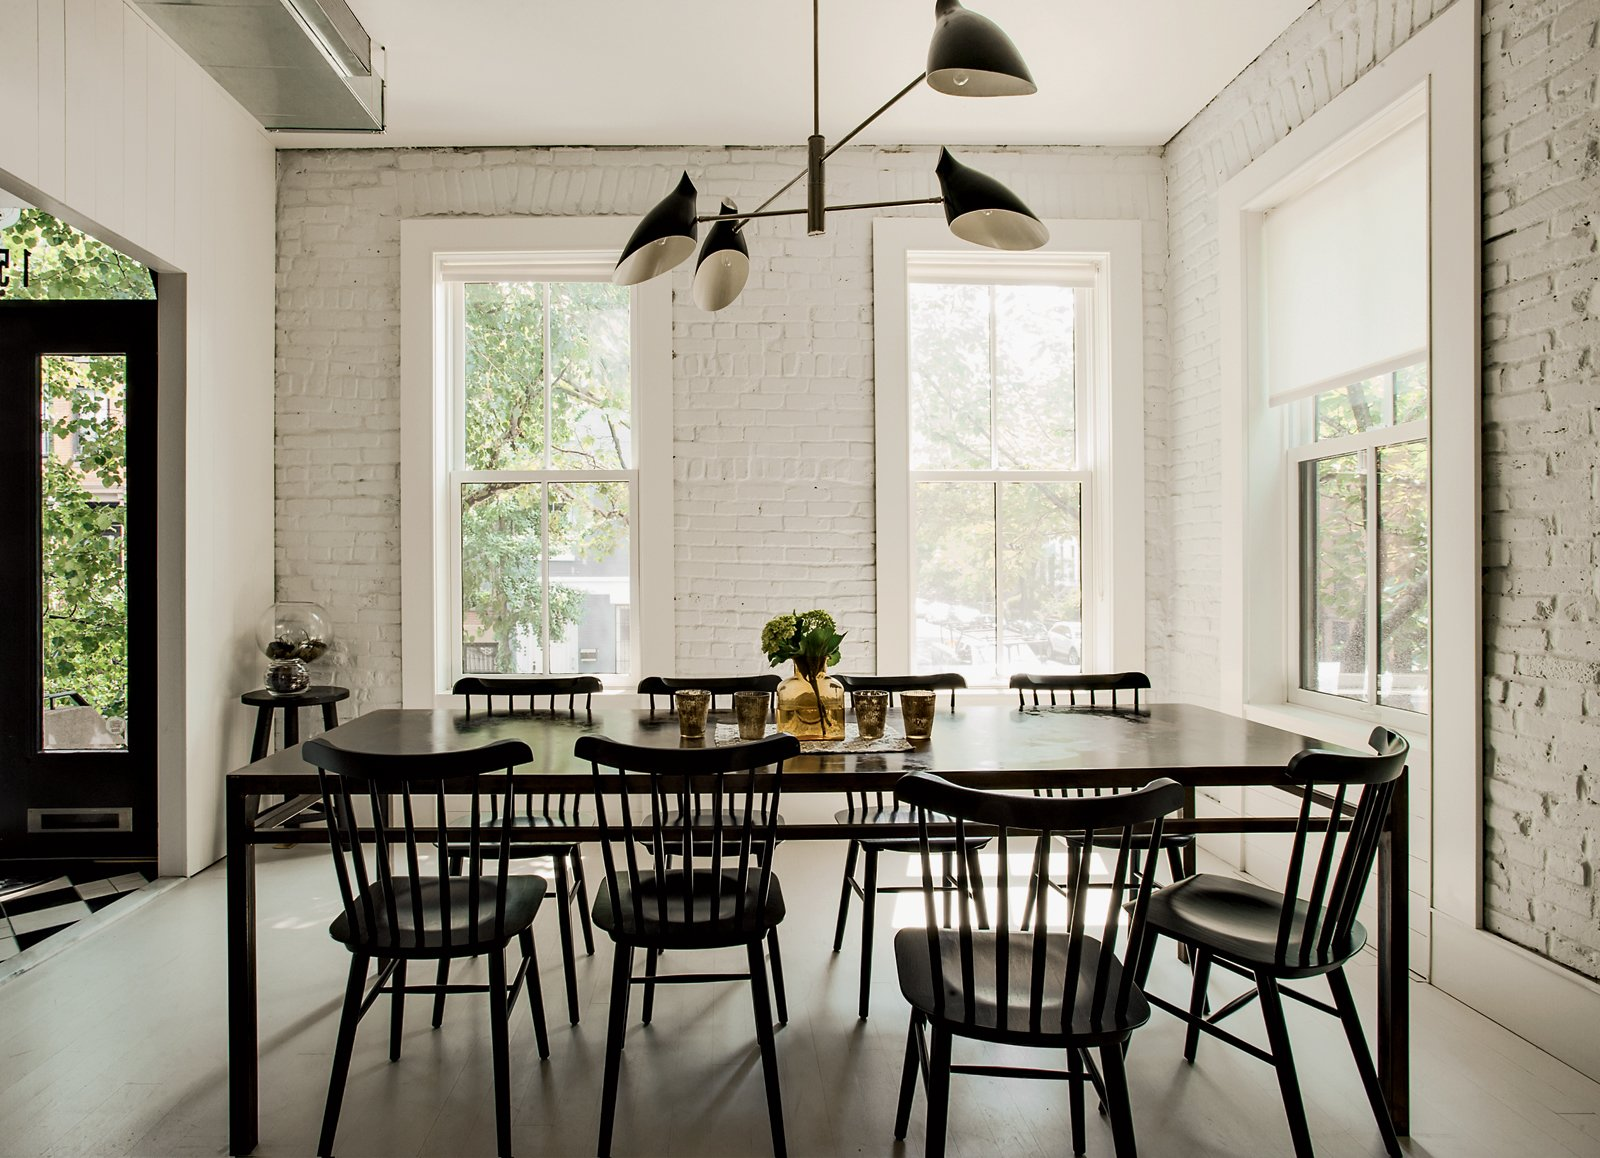 The Torroja pendant light by David Weeks hangs in the dining area, standing in sharp relief to the home's original brick, now painted white (in Benjamin Moore Paper White)along with the wooden floorboards (in Benjamin Moore Revere Pewter). Radiant heat underfoot means a toasty interior even without a surfeit of textiles.